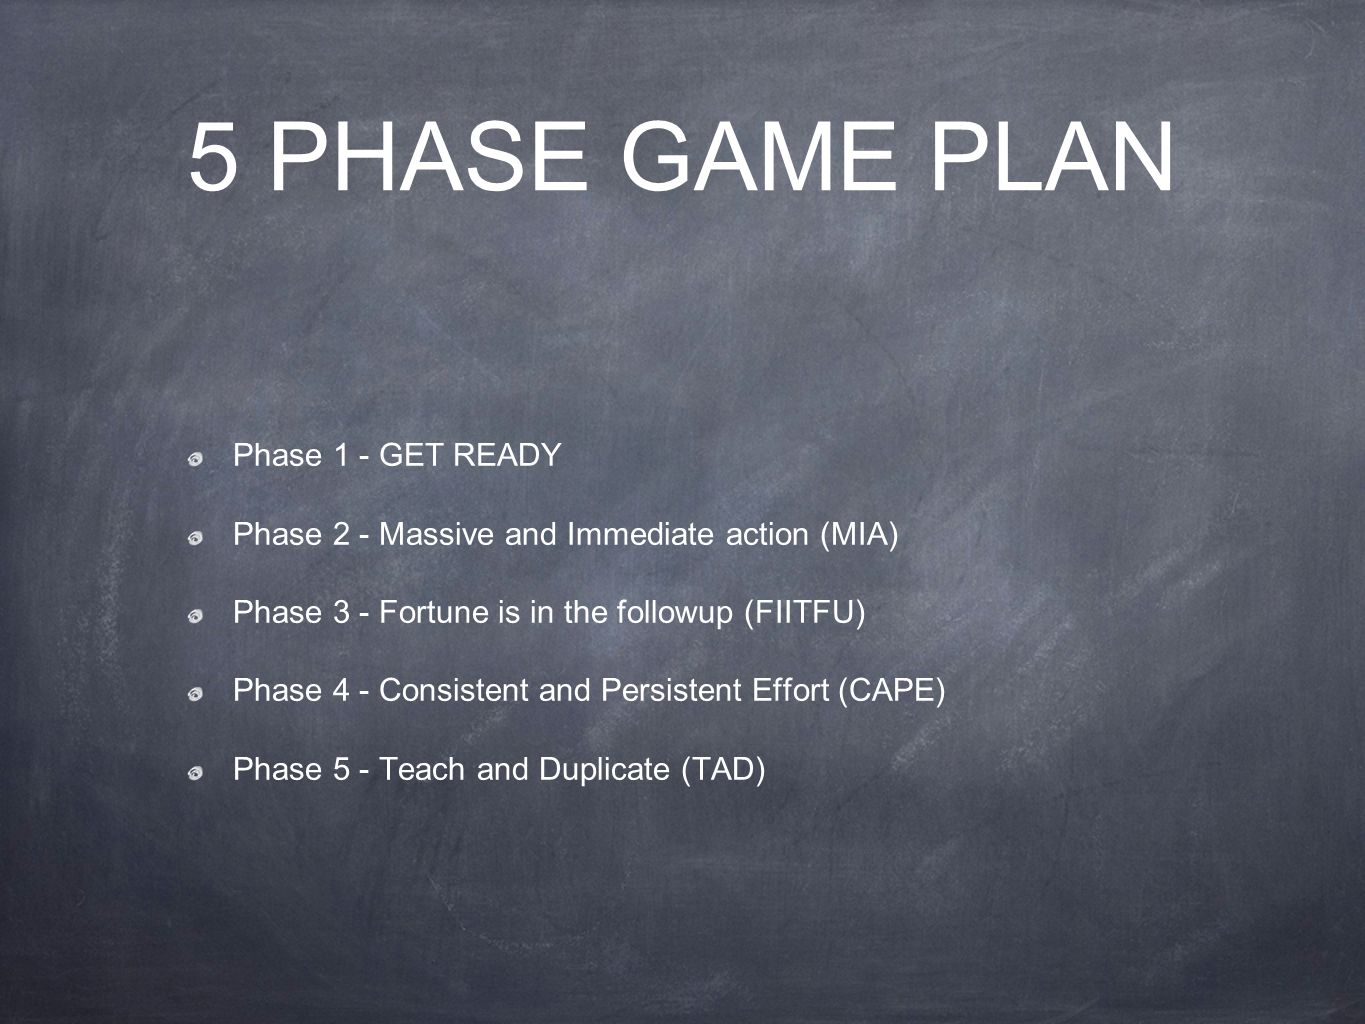 5 PHASE GAME PLAN Phase 1 - GET READY Phase 2 - Massive and Immediate action (MIA) Phase 3 - Fortune is in the followup (FIITFU) Phase 4 - Consistent